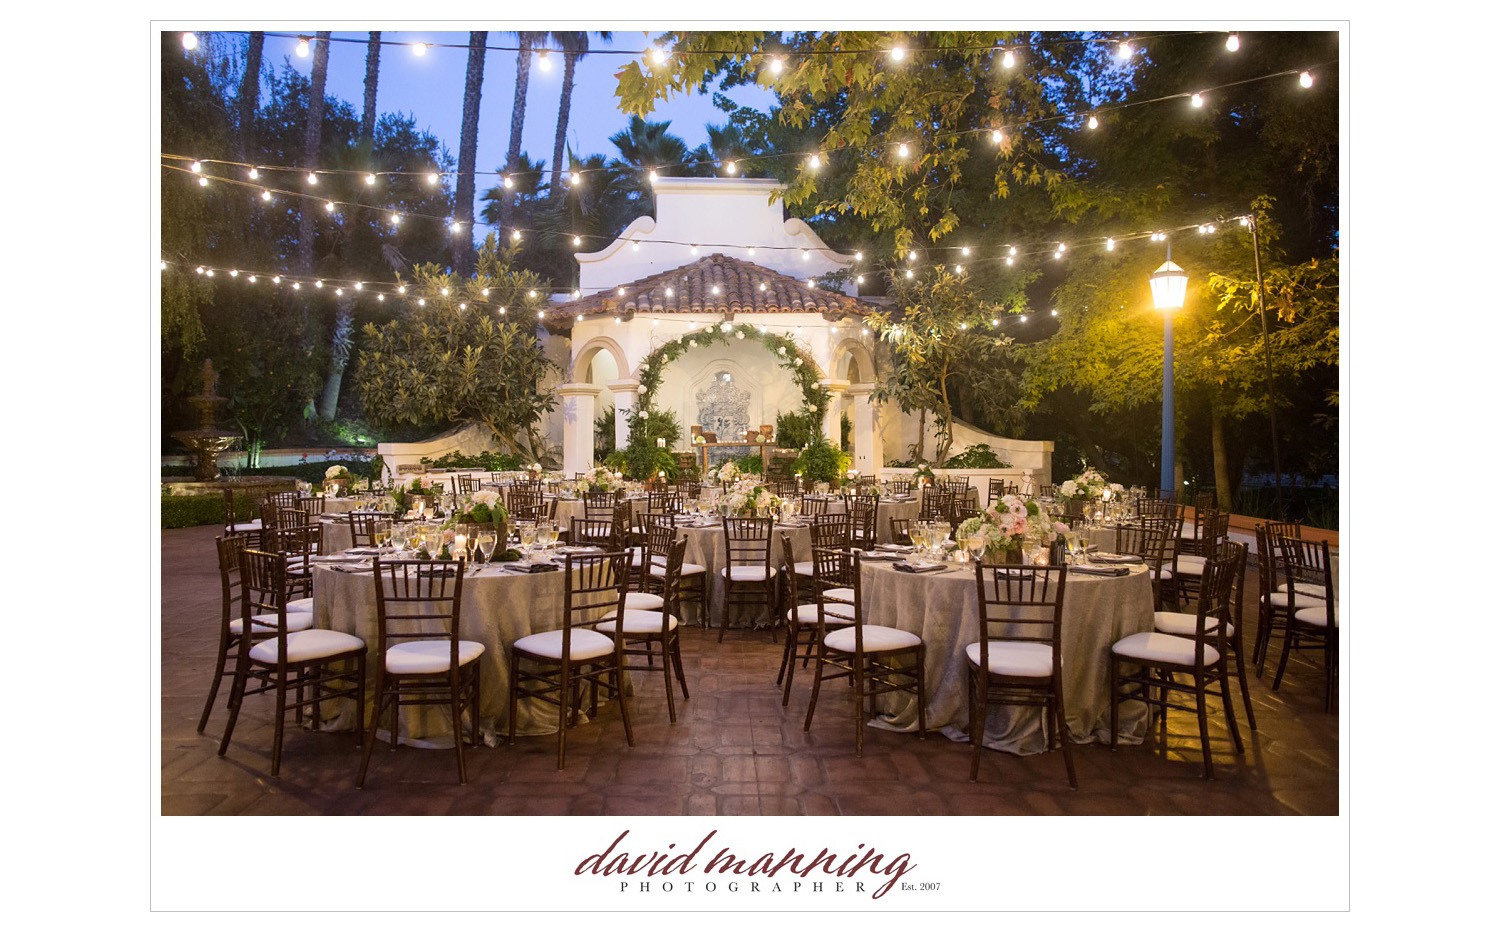 The-Montage-Rancho-Las-Lomas-Wedding-David-Manning-Photographers130921-0043.jpg